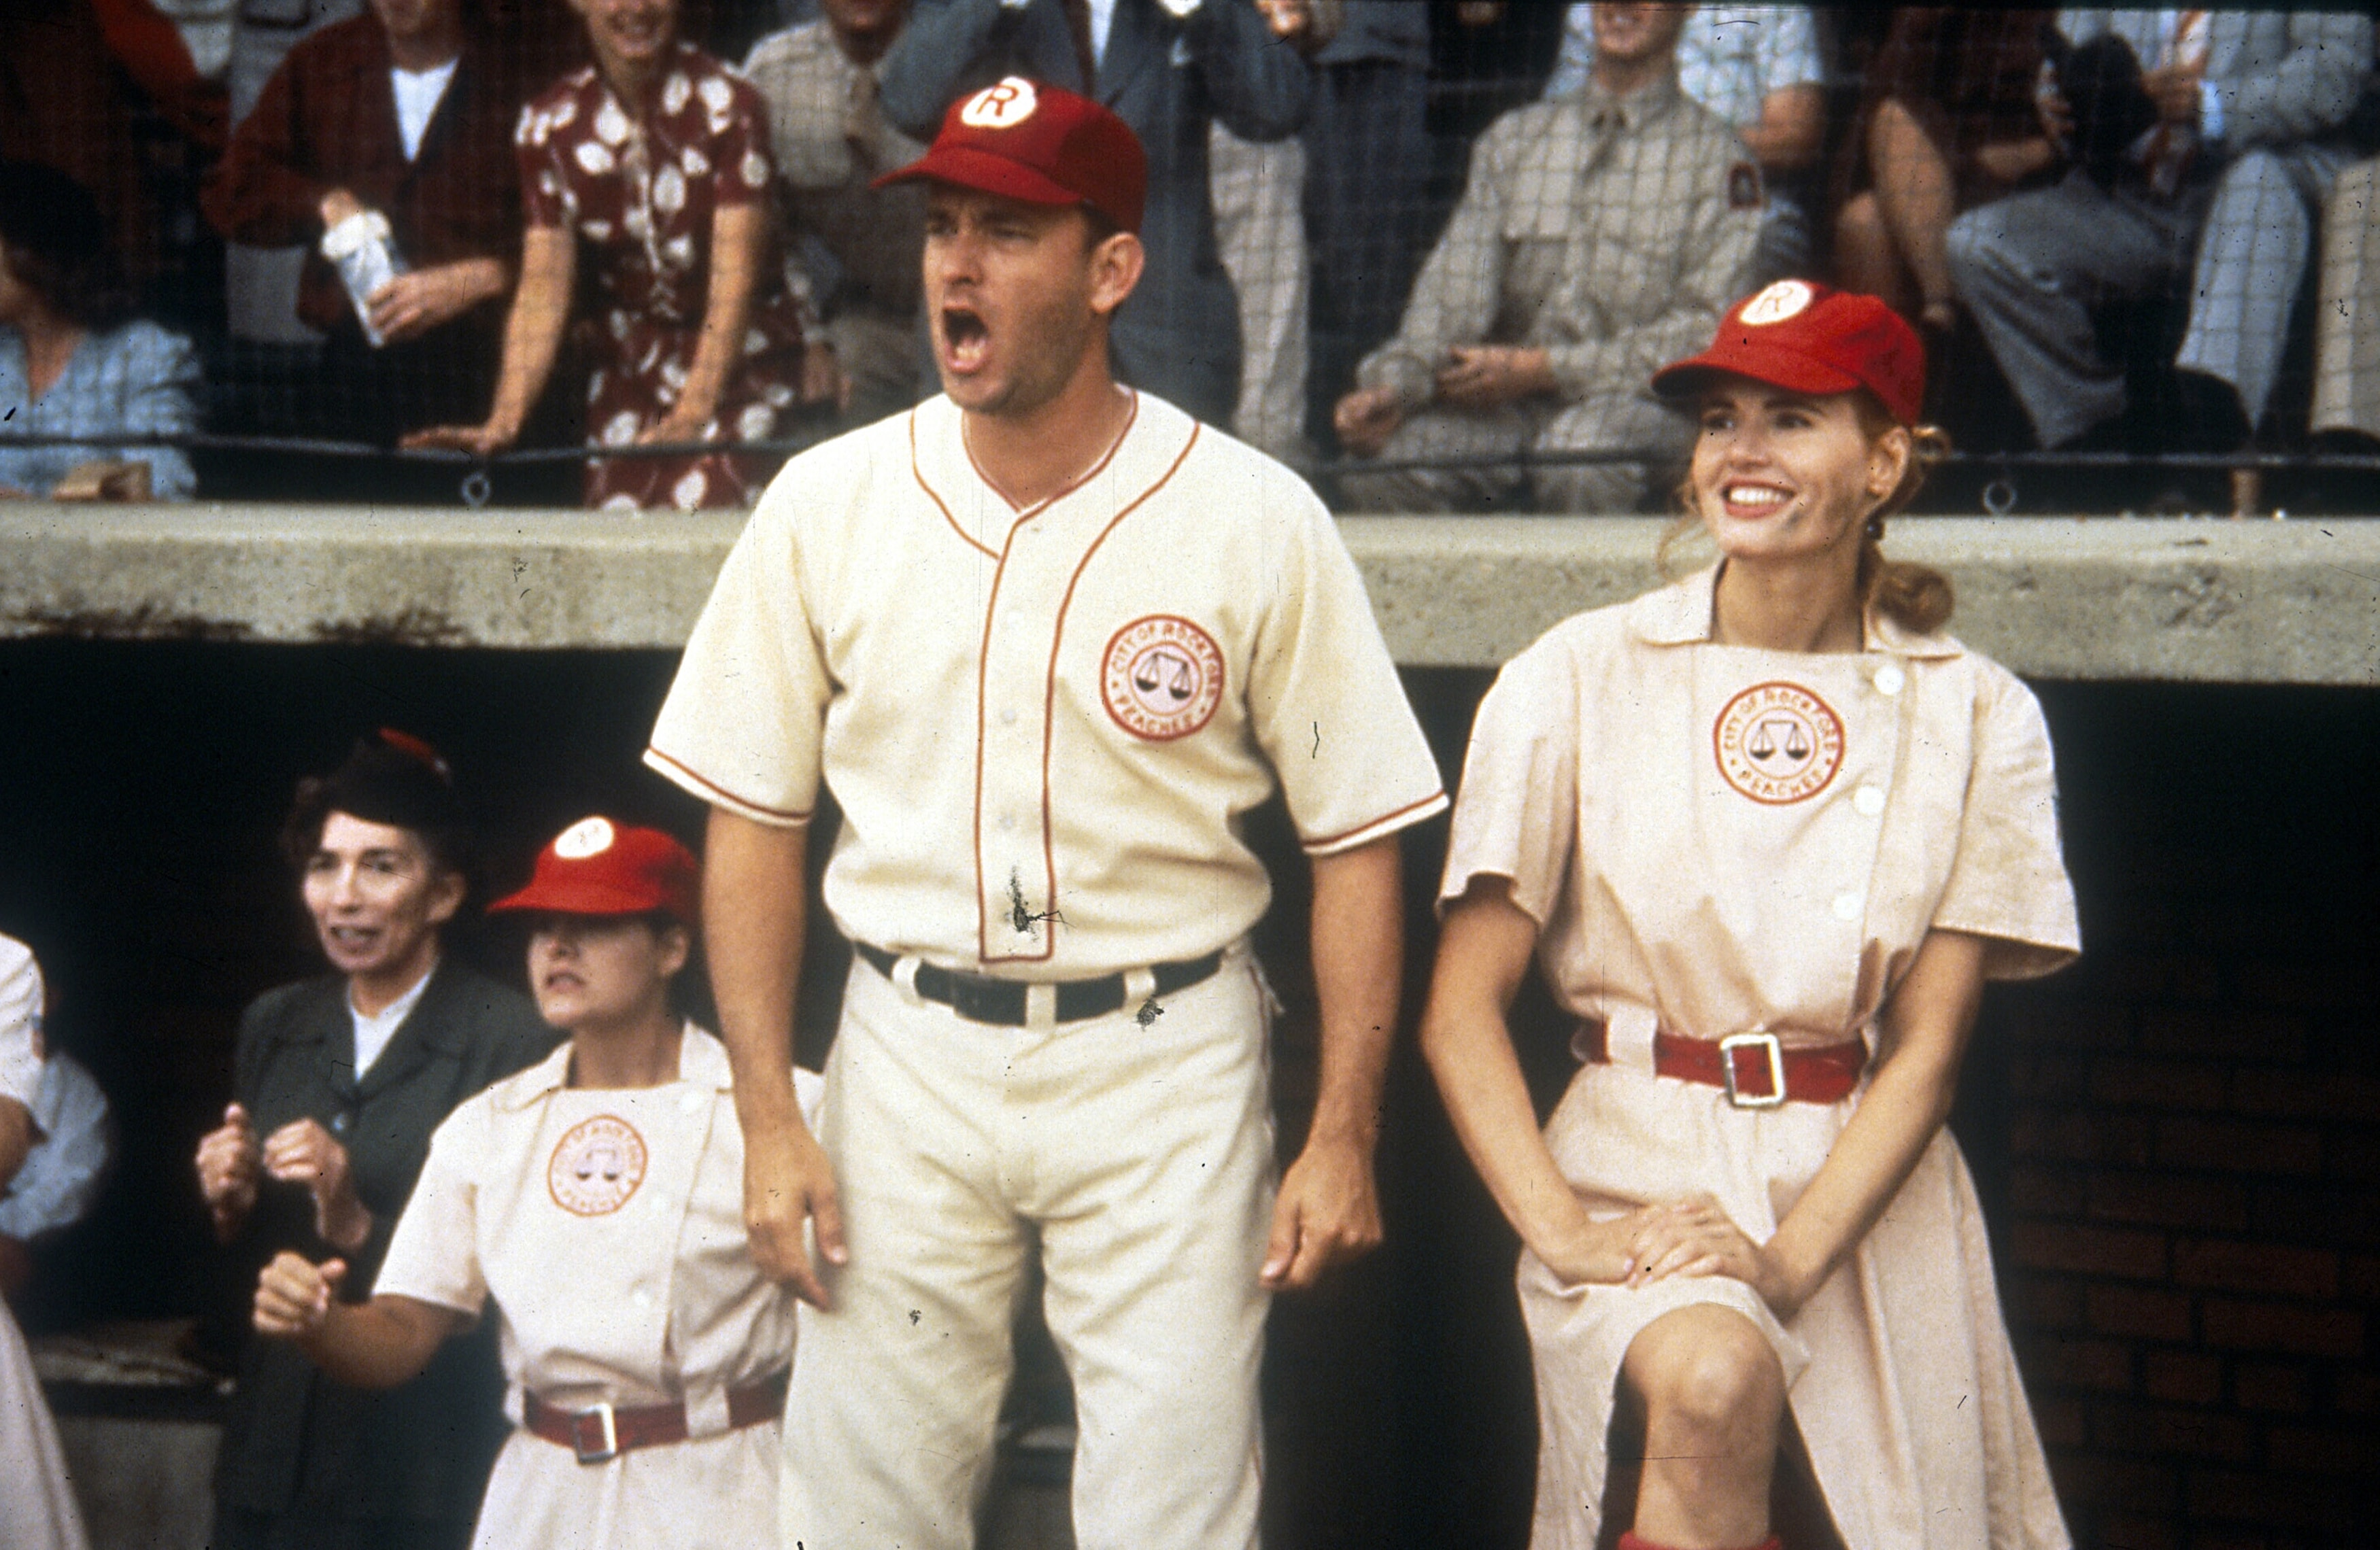 A League Of Their Own 1992 Turner Classic Movies Tom hanks, geena davis, lori petty and others. a league of their own 1992 turner